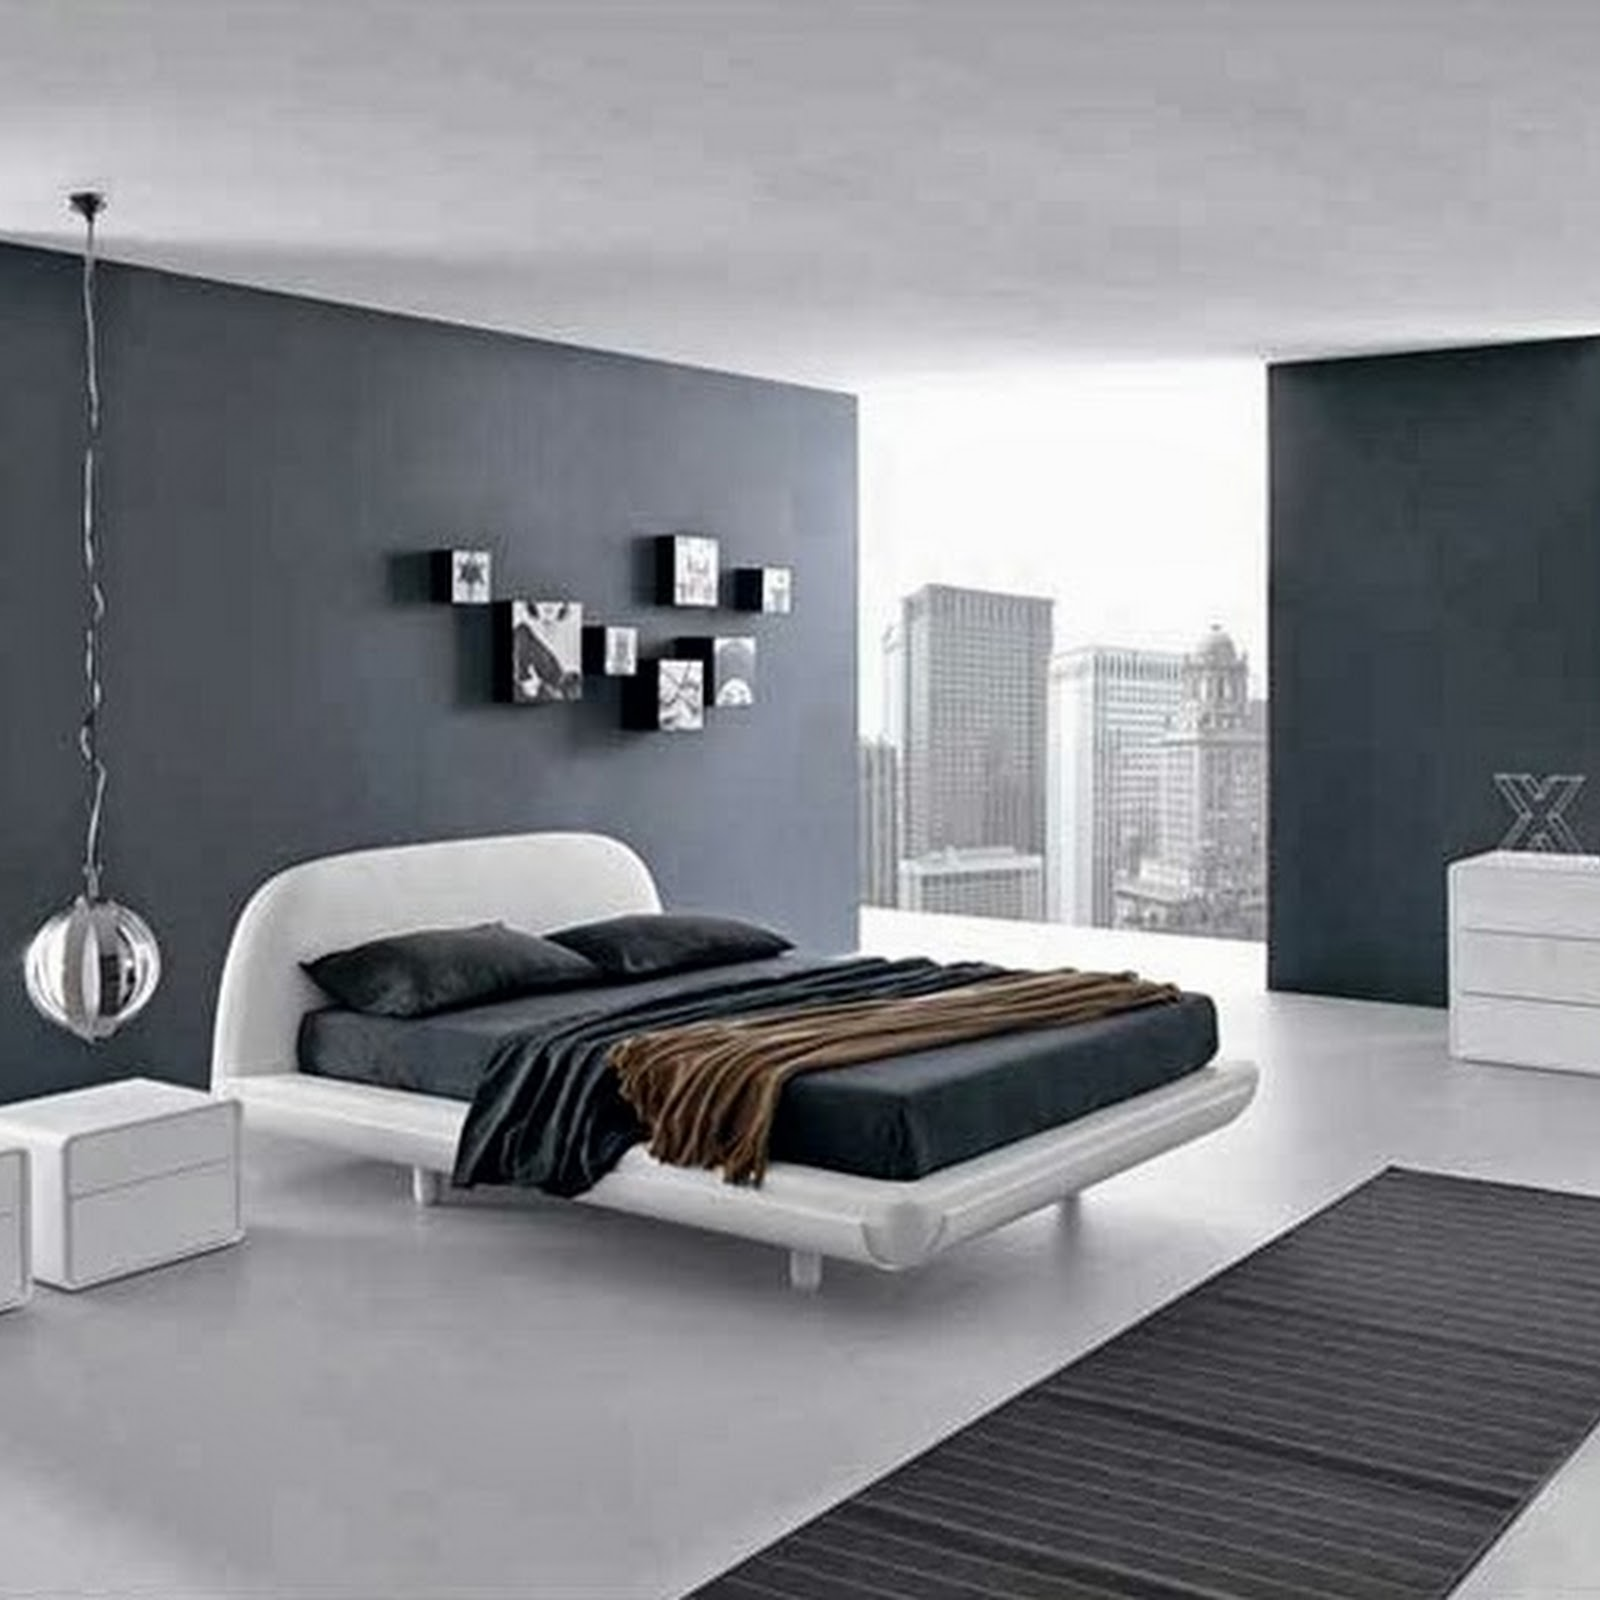 color ideas for bedroom walls photo - 2